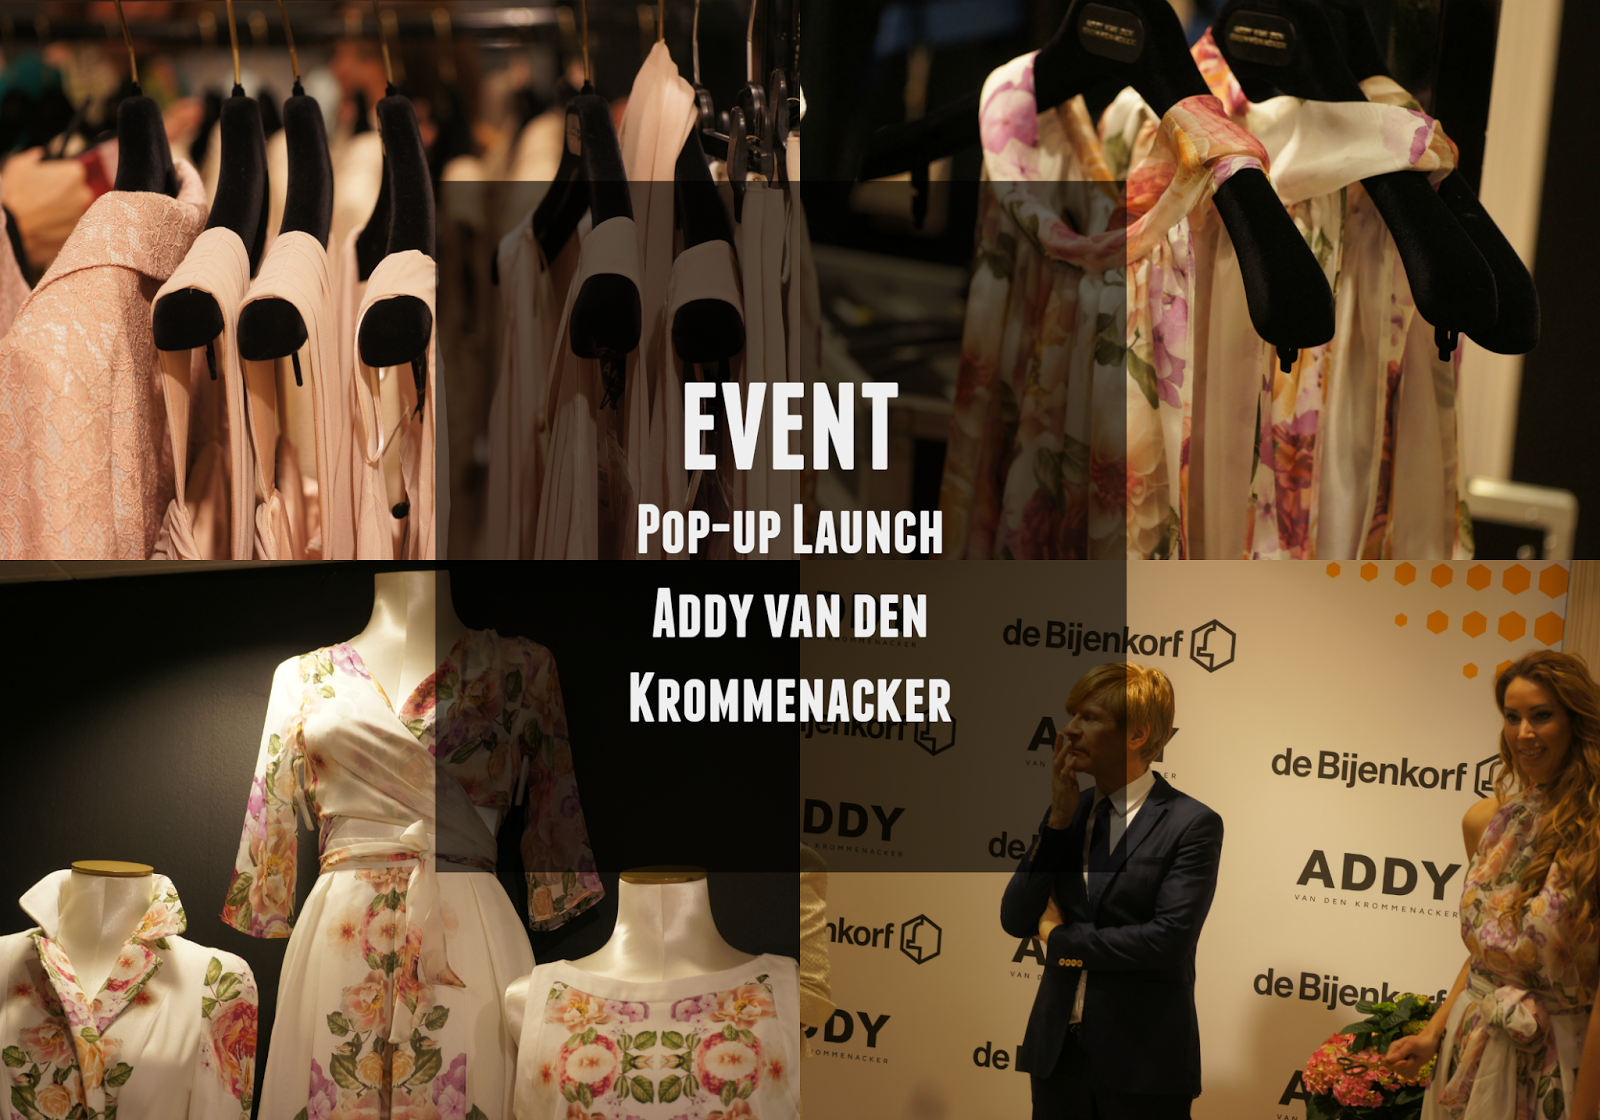 event addy van den krommenacker pop-up store launch